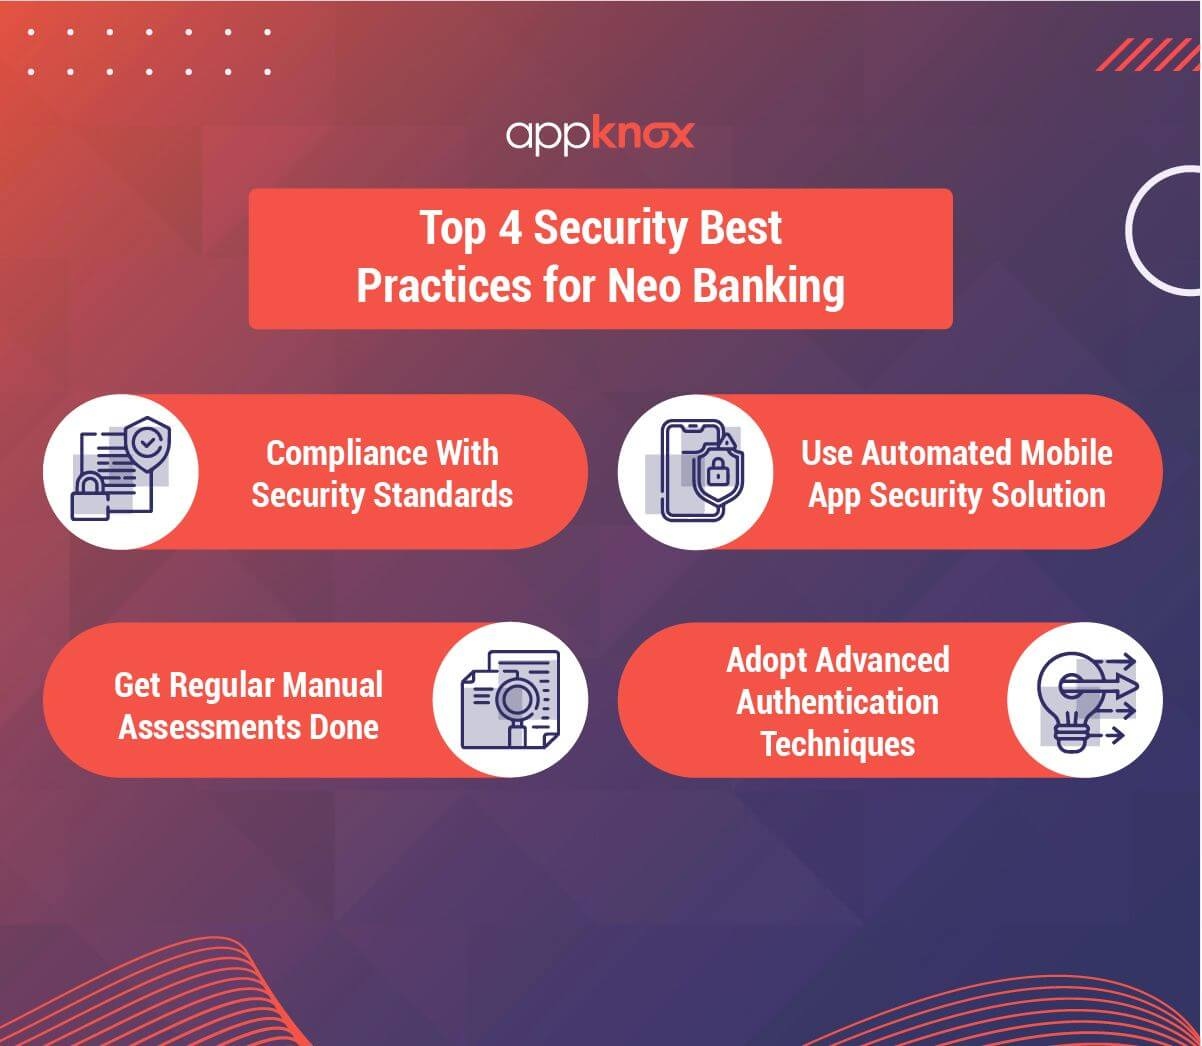 Top 4 Security Best Practices for Neo Banking